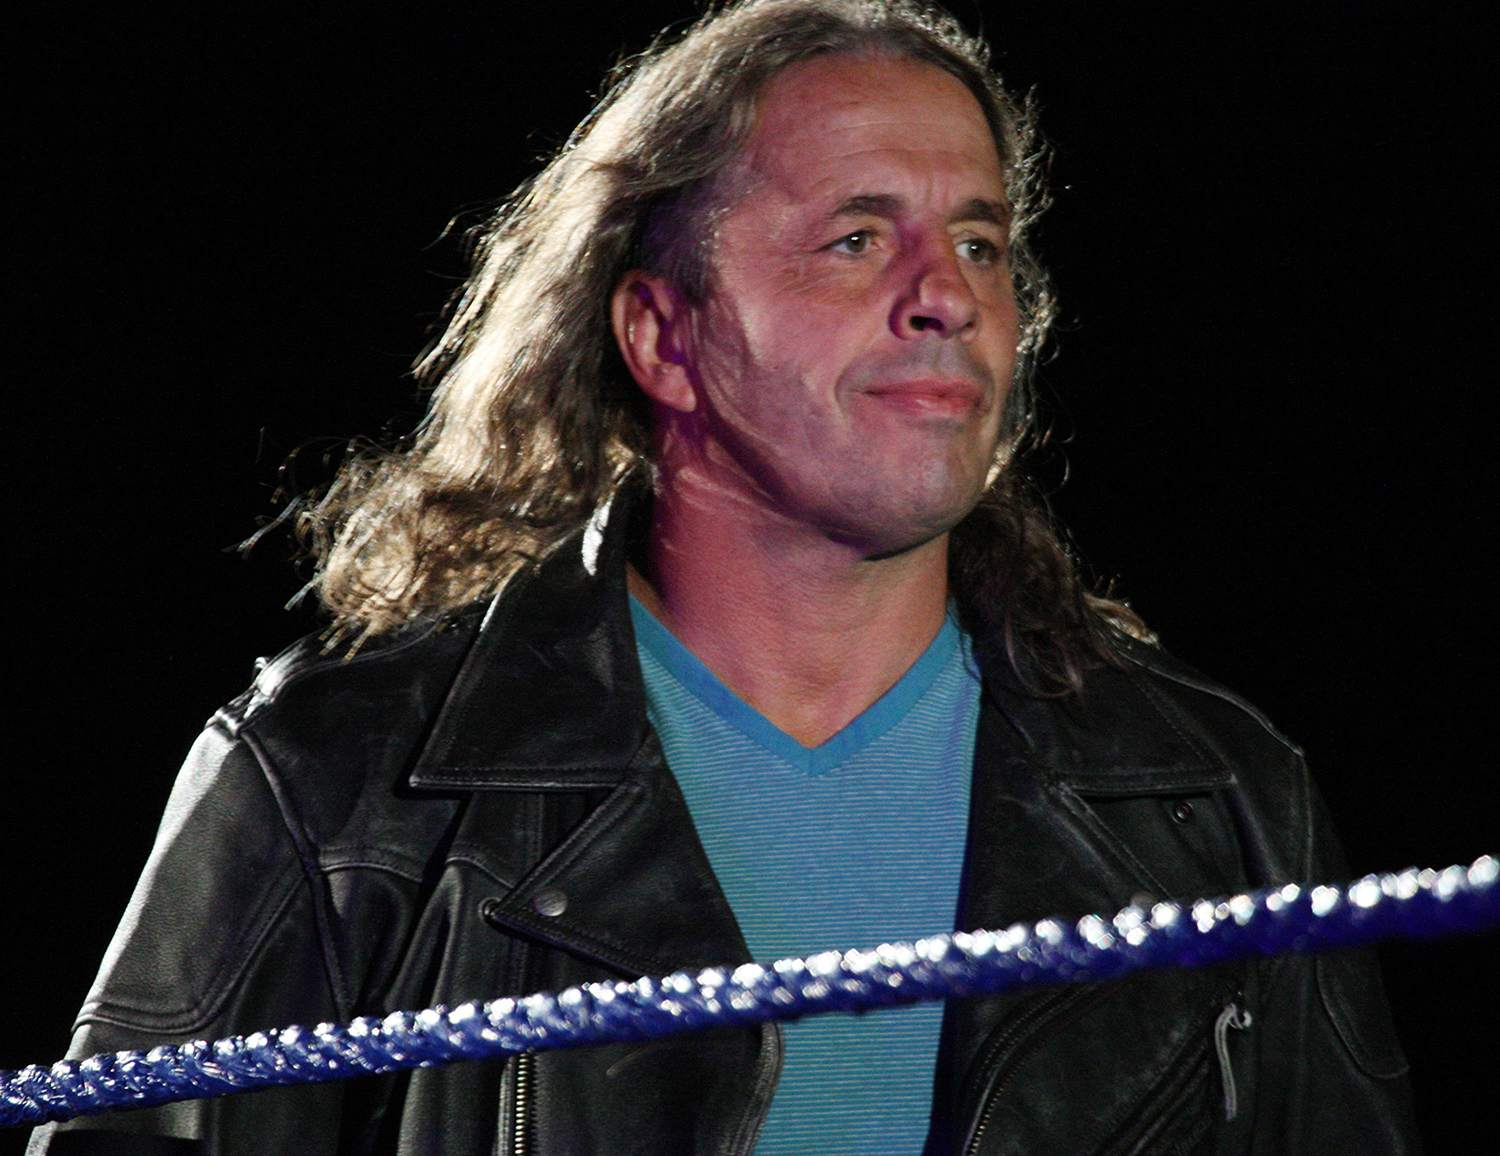 Special guest referee Bret 'The Hitman' Hart during the WWE Smackdown Live Tour at Westridge Park Tennis Stadium on July 08, 2011 in Durban, South Africa.